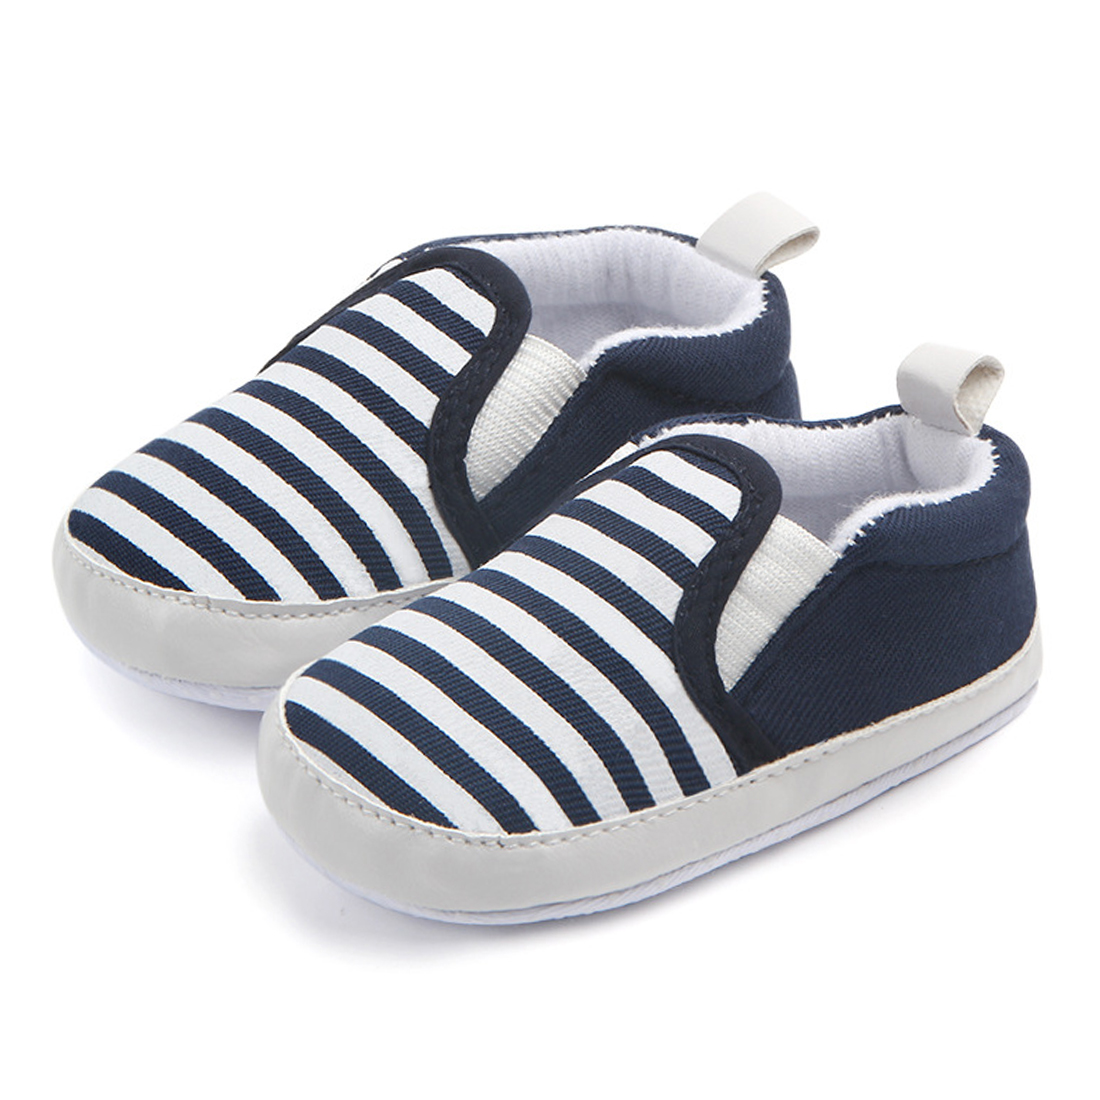 61e573c33db Fashion Baby Boy Shoes Soft Sole First Walkers Slip on Newborn Loafers  Infant Girl Slippers Toddler Trainers Stripe House Shoes